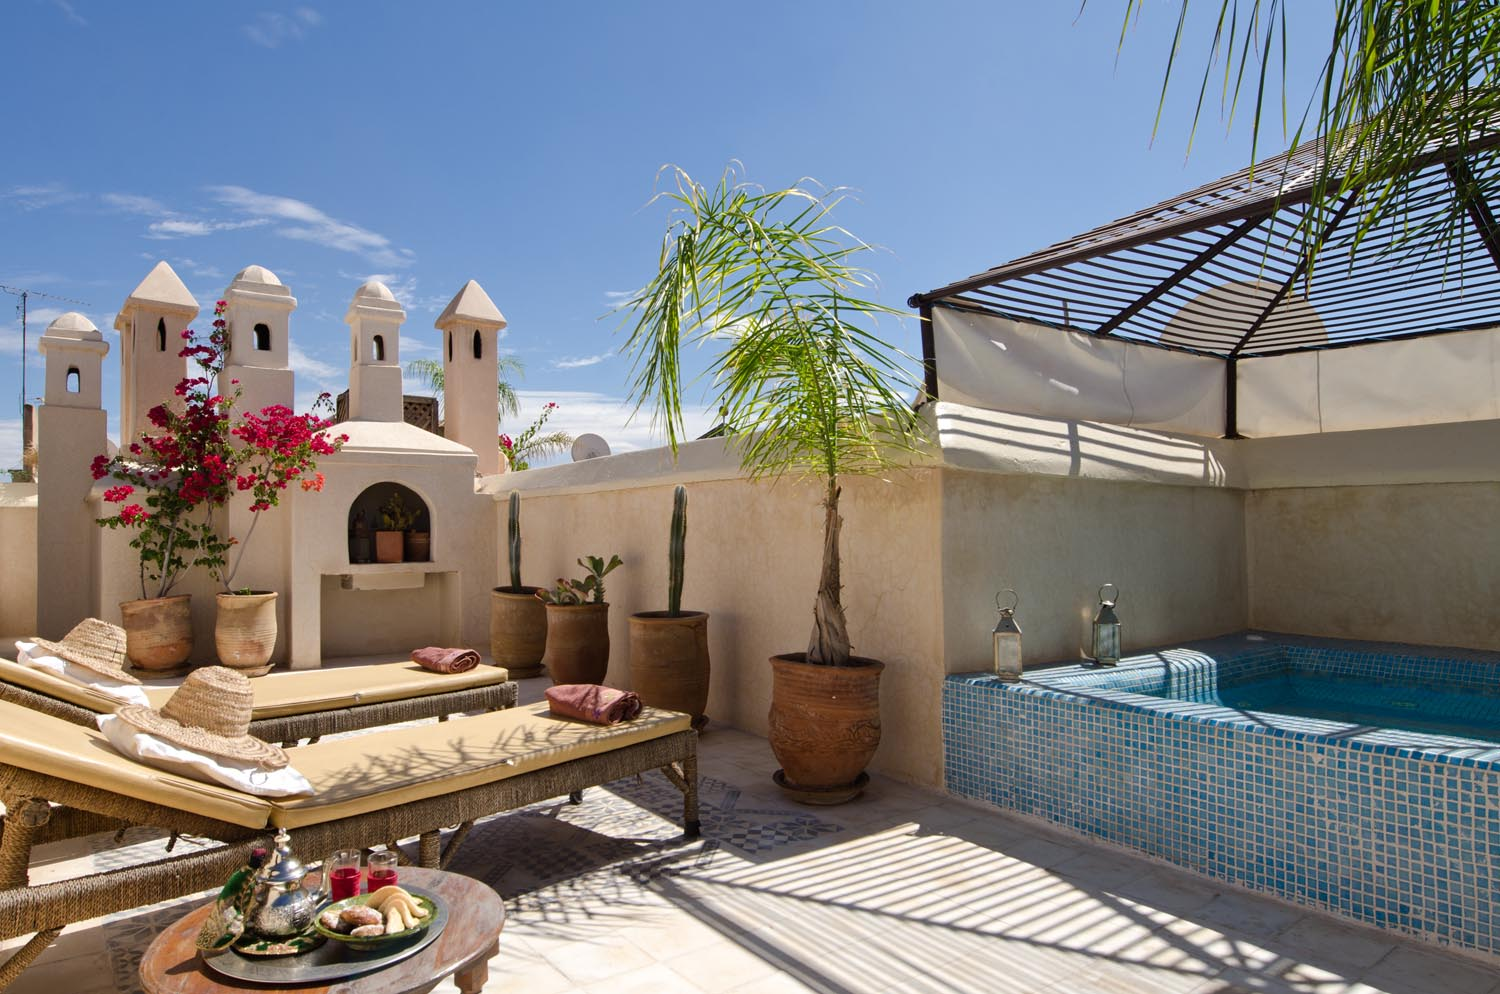 Riad vert luxury riad in marrakech morocco book riad for Jardin decoration terrasse